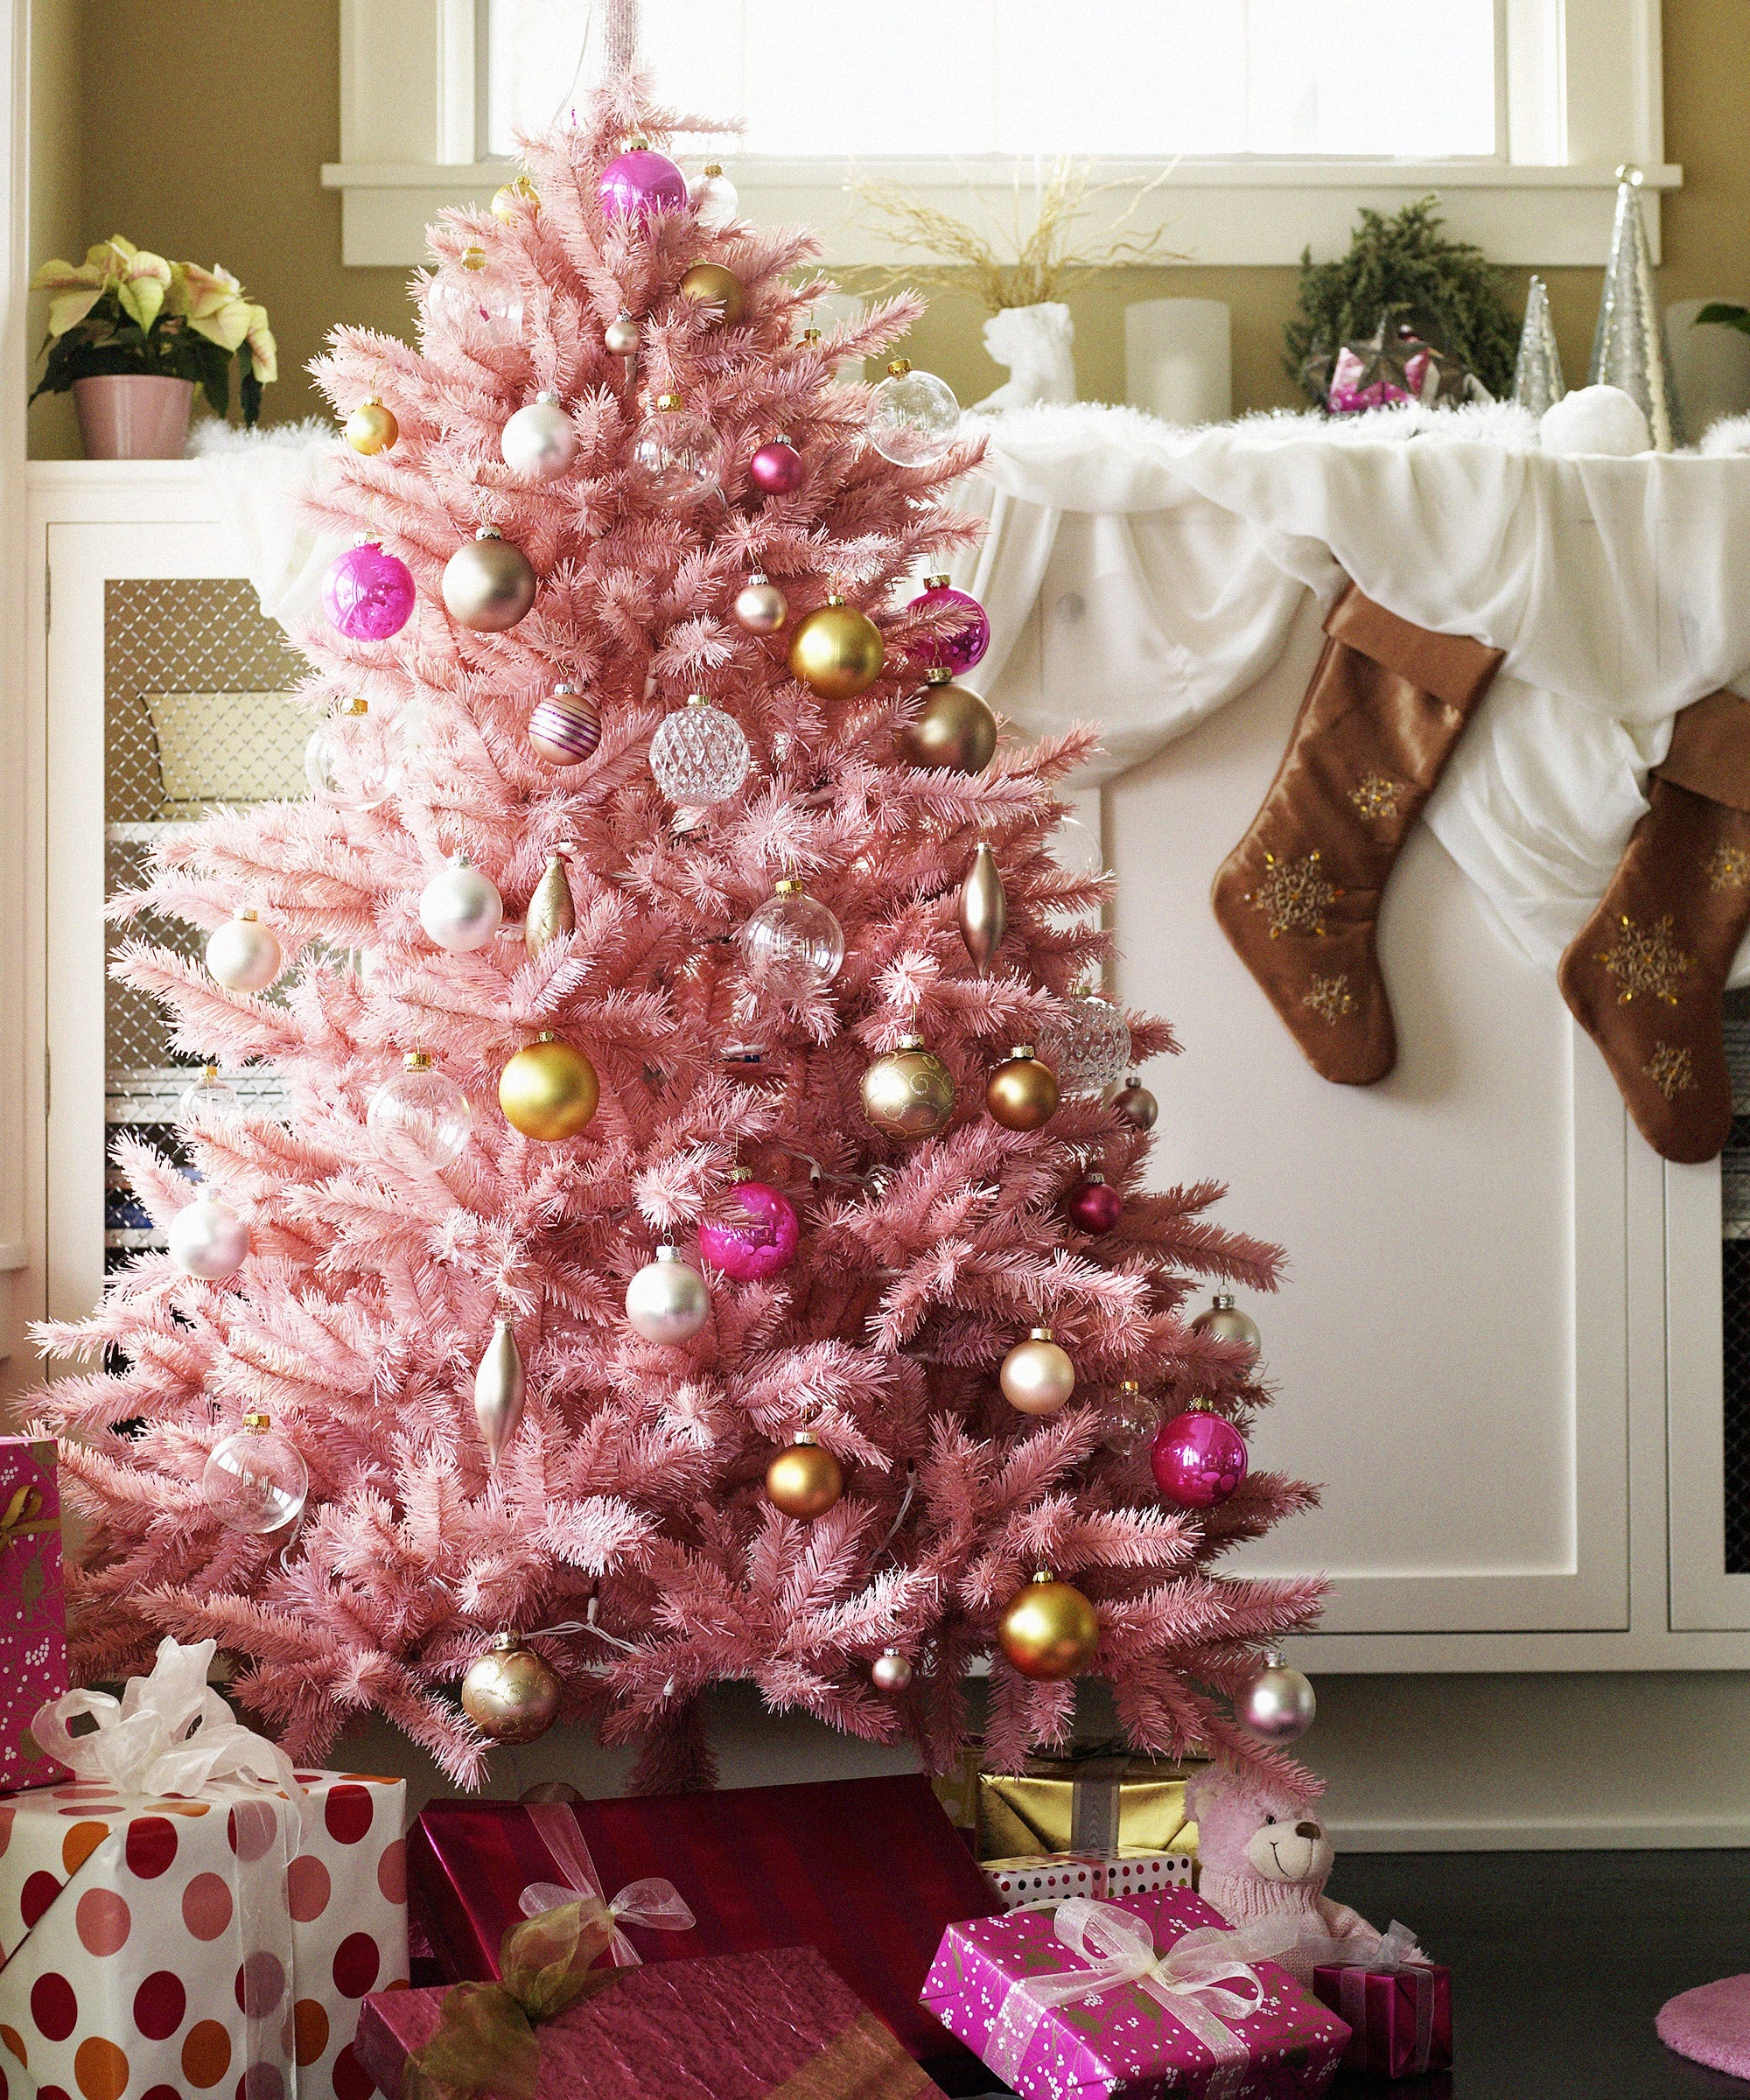 Pink Christmas Trees.Pink Christmas Tree Holiday Home Decor Instagram Trend